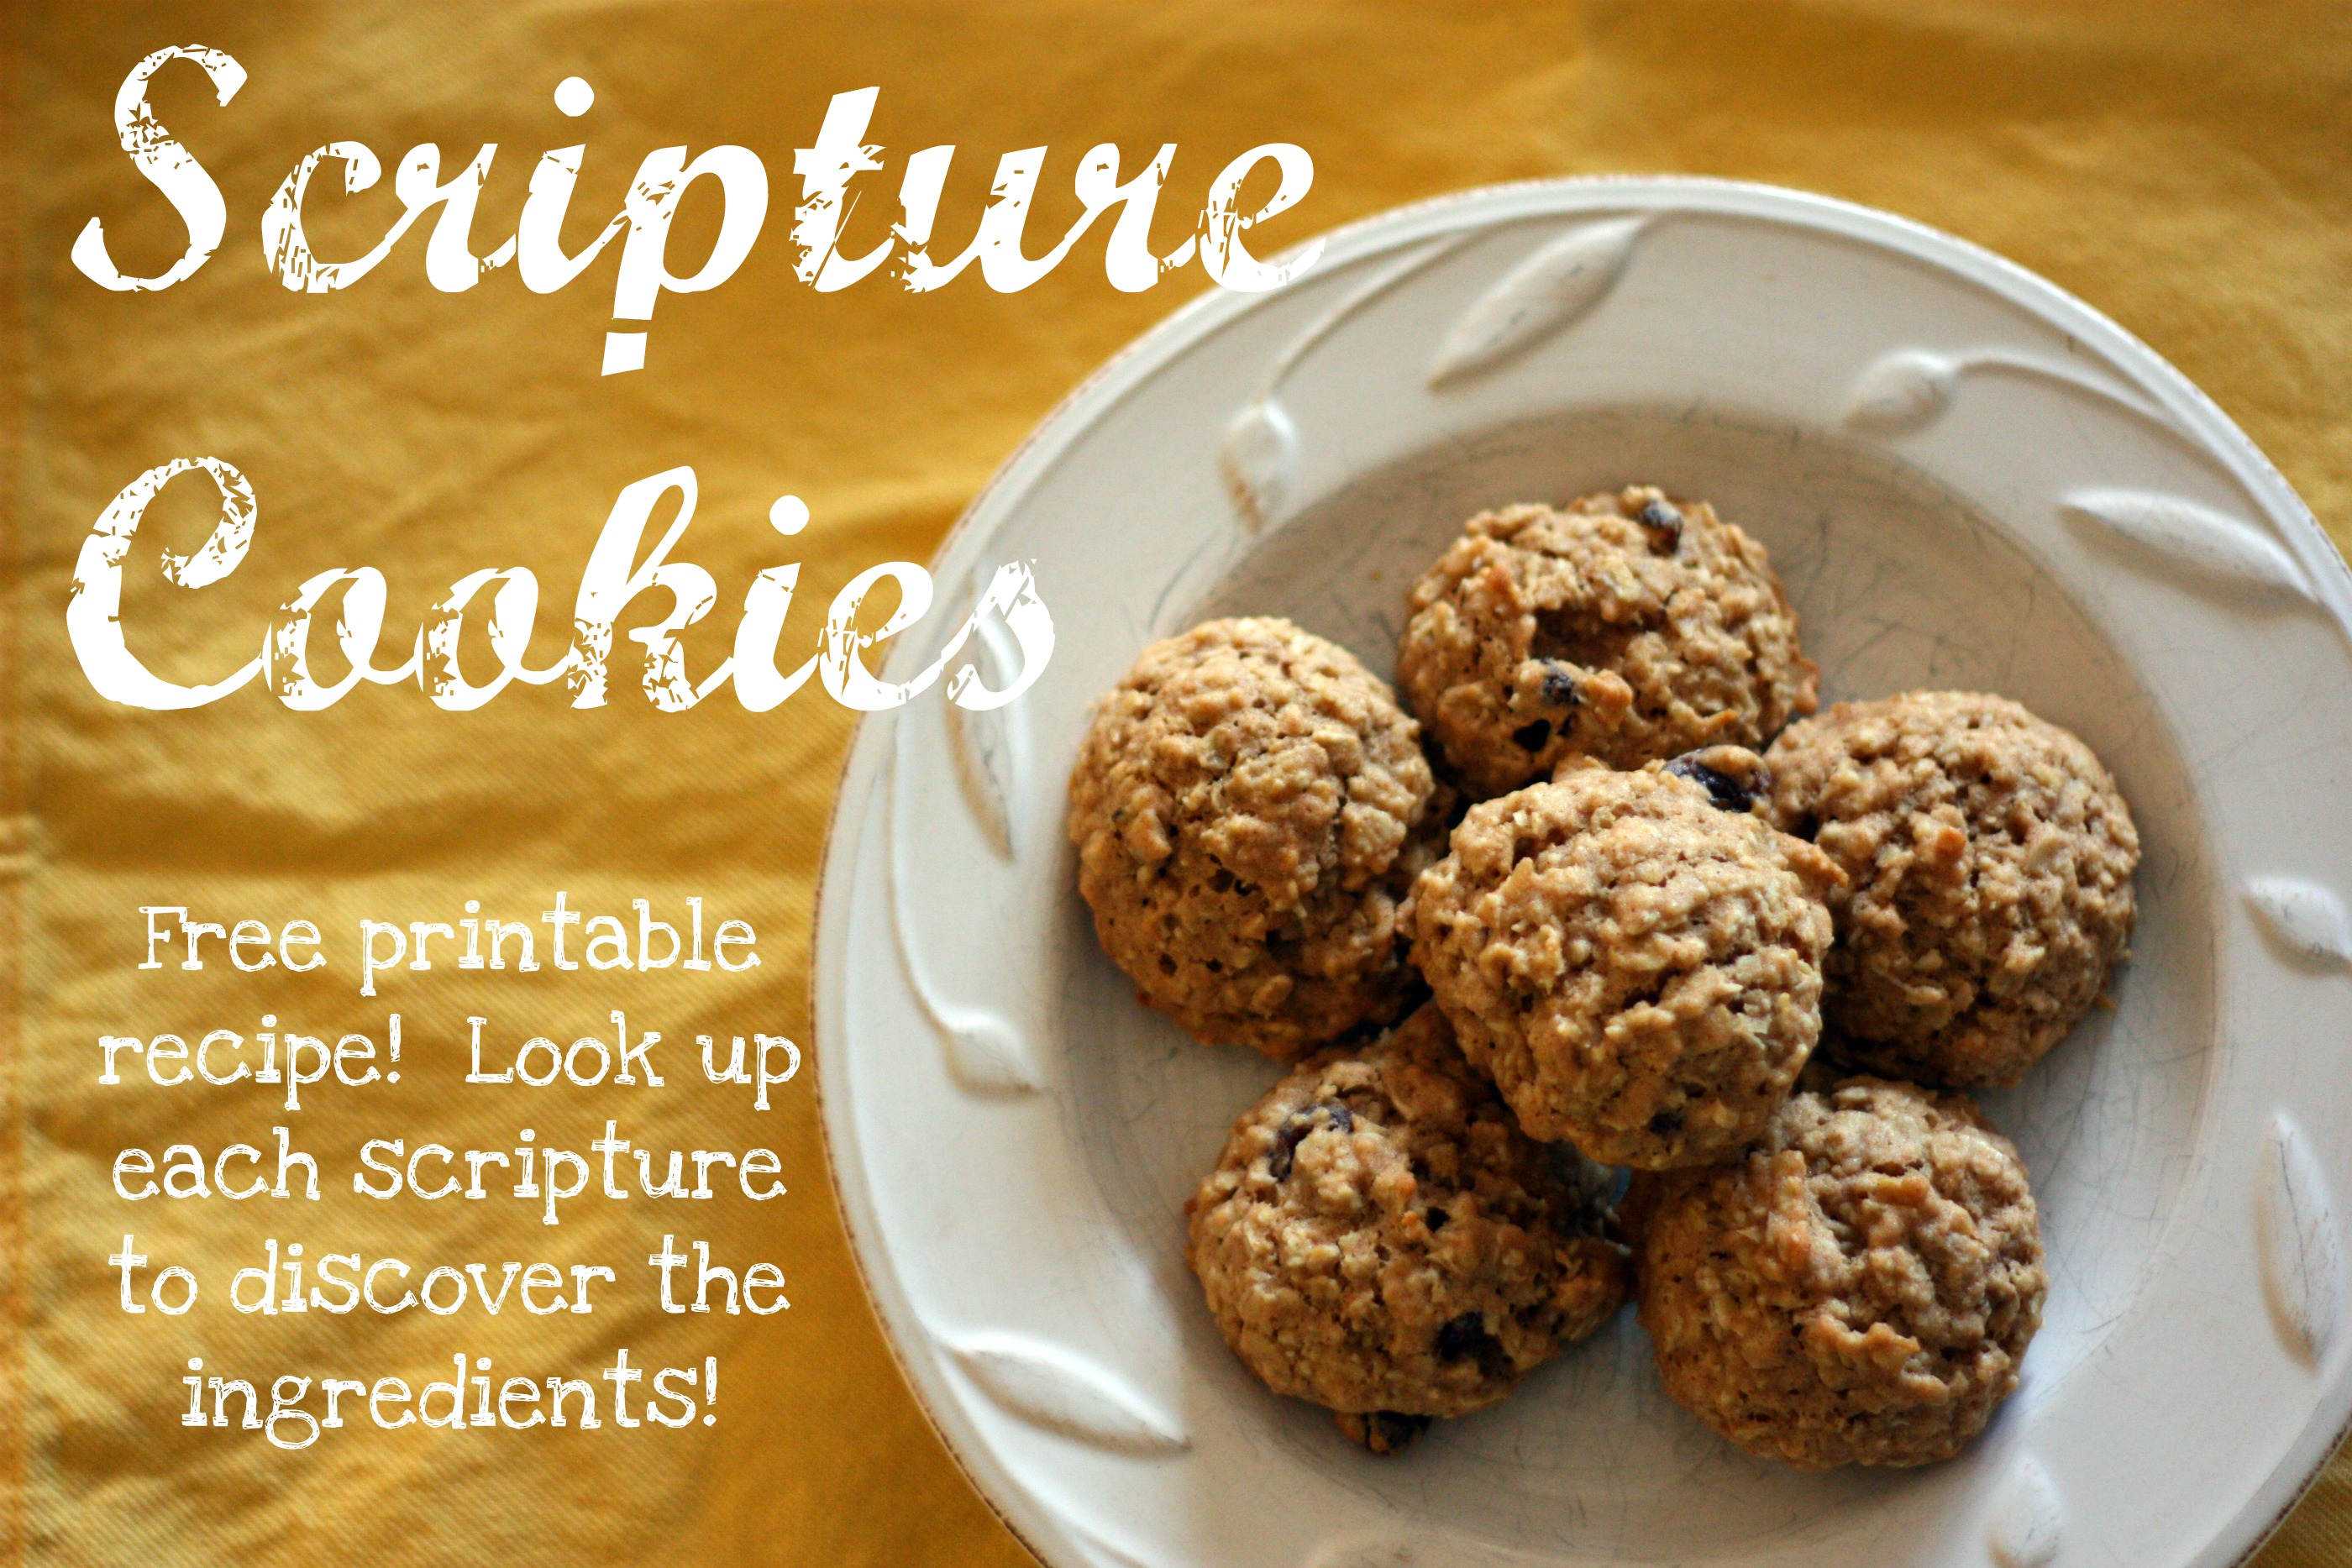 Scripture Cookies With Free Printable Recipe I Can